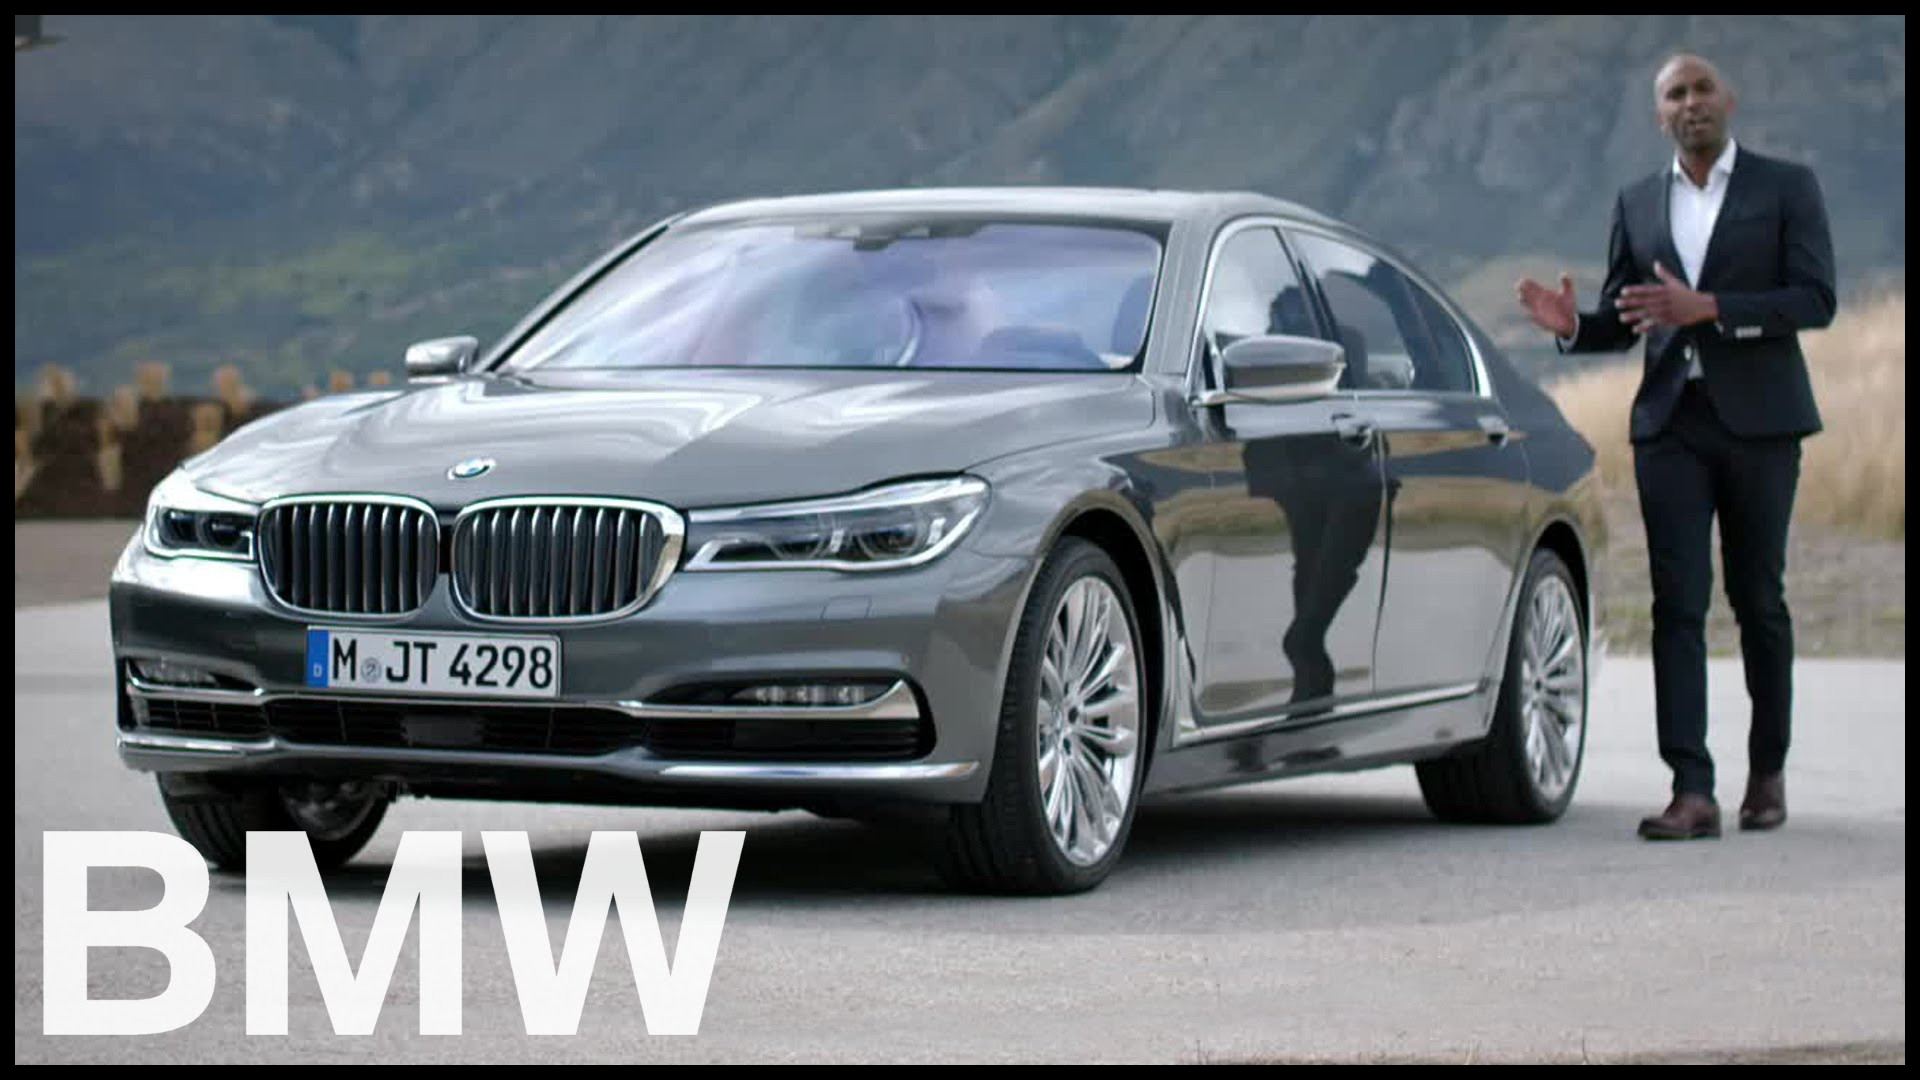 New Bmw Models In 2019 Unique the All New Bmw 7 Series All You Need to